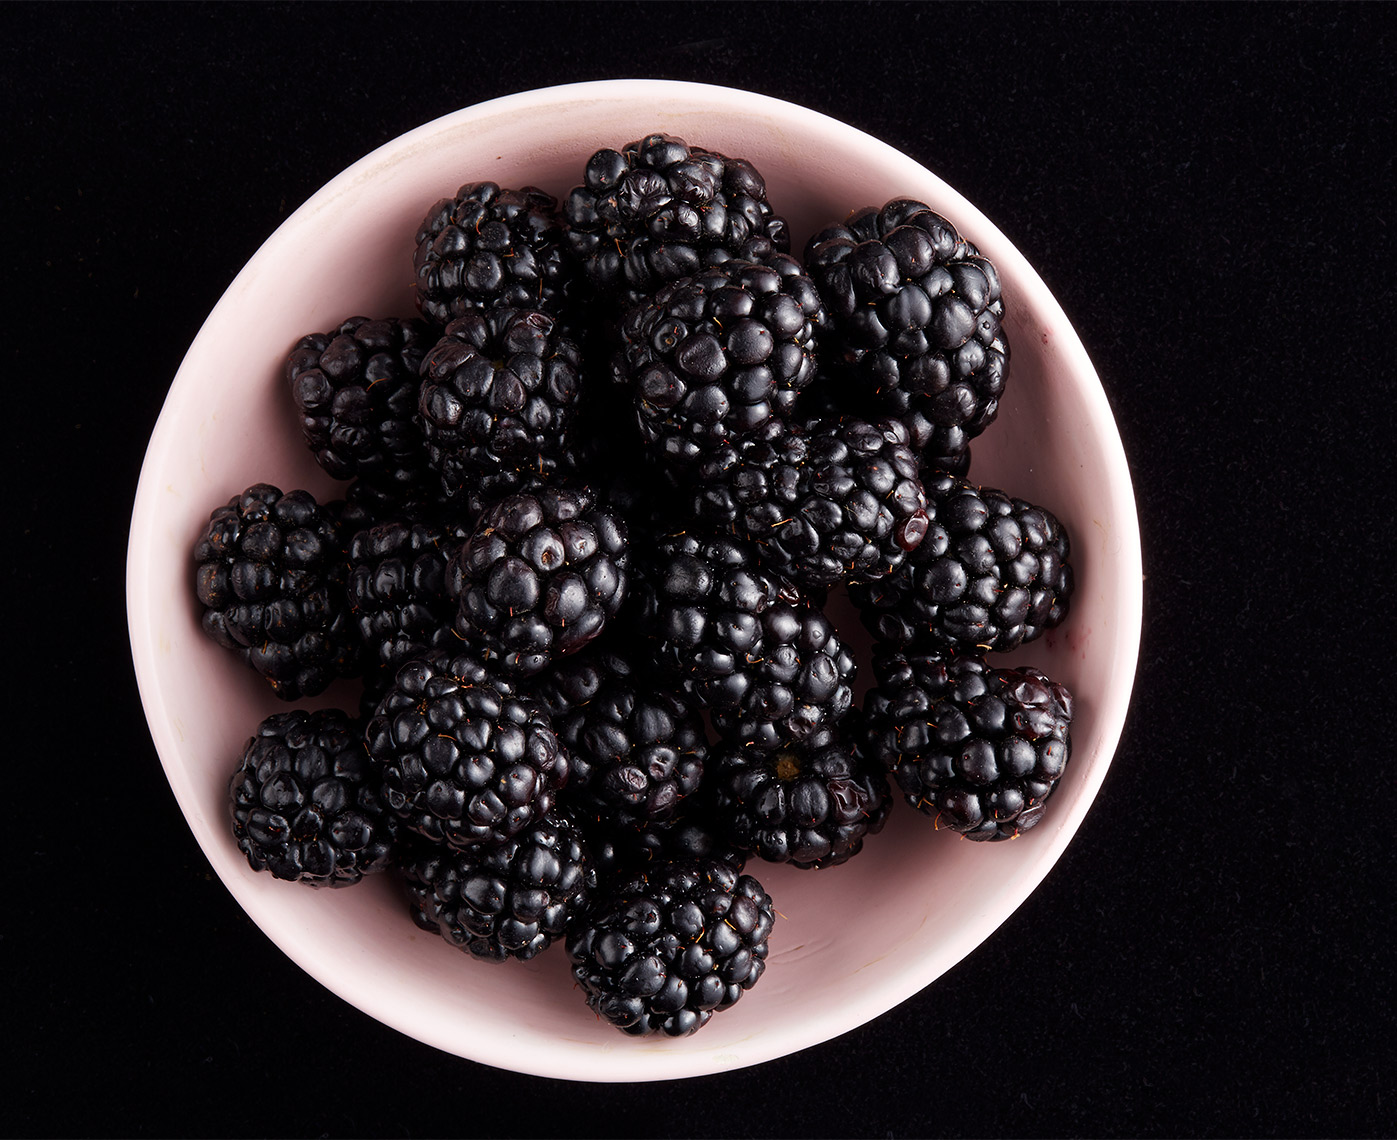 20160321_INTO1_Blackberries_016